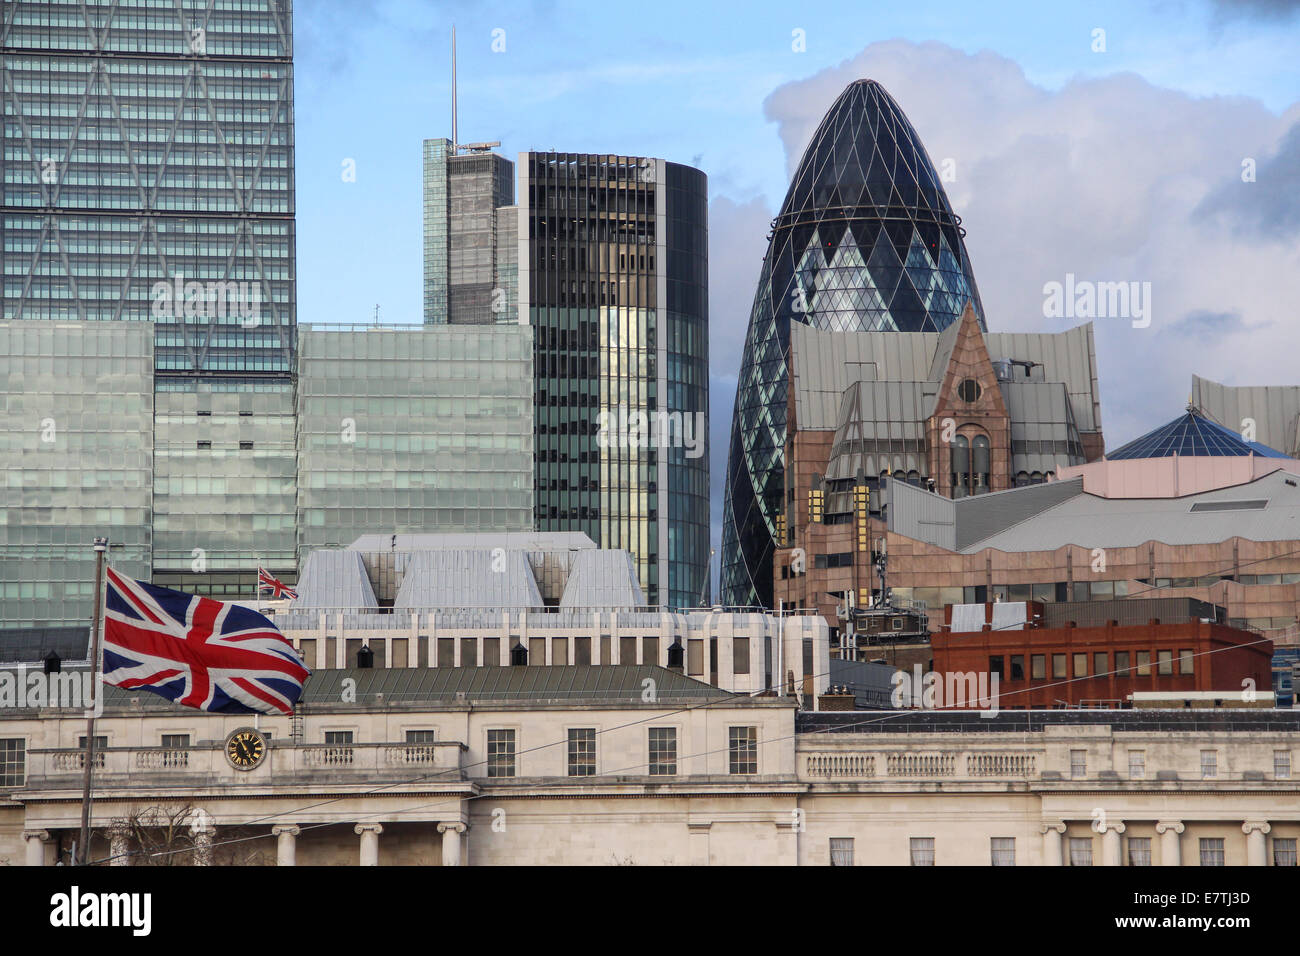 England: City of London with 30 St Mary Axe (the Gherkin). Photo from 10. January 2014. Stock Photo